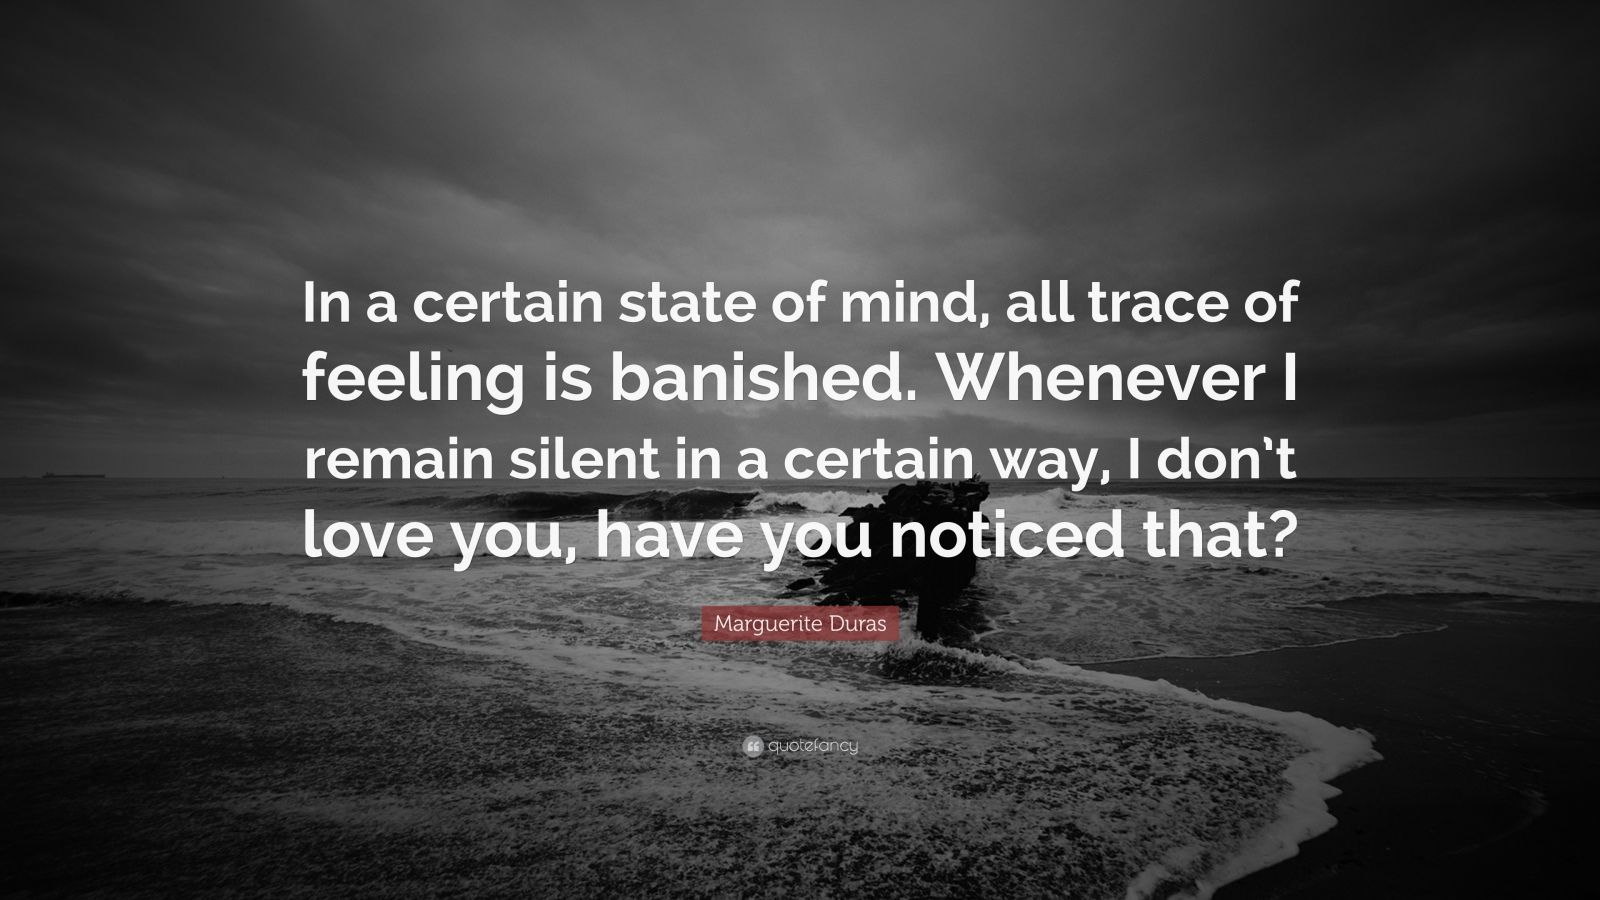 """Marguerite Duras Quote: """"In a certain state of mind, all trace of feeling is banished. Whenever I remain silent in a certain way, I don't love you, have you noticed that?"""""""